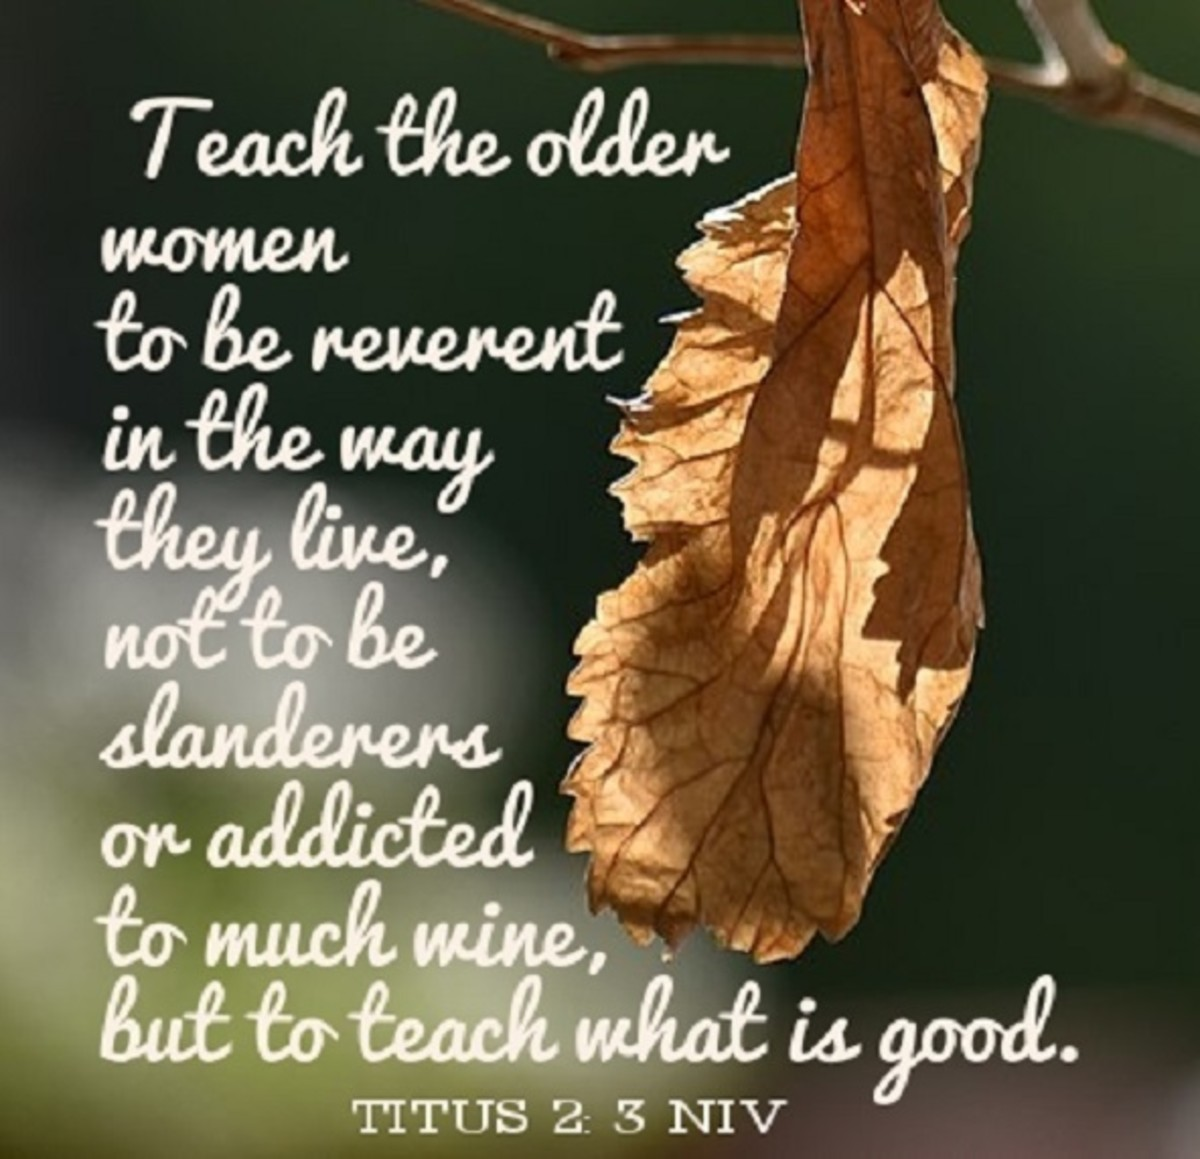 Teach the older women to be reverent in the way they live ...to teach what is good.